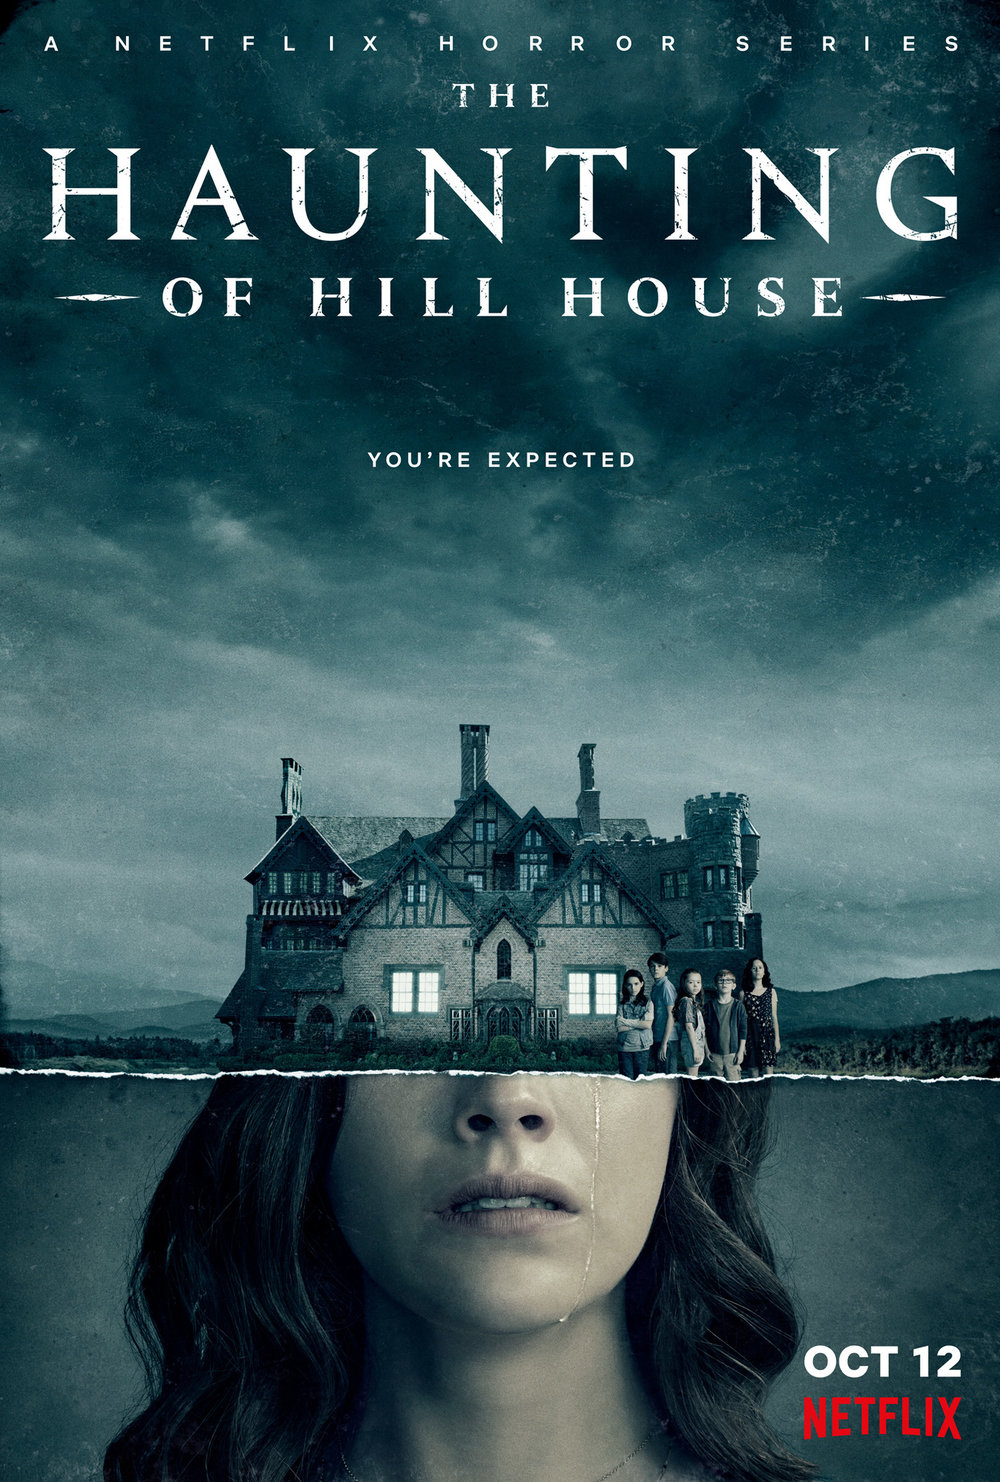 Pop Disciple Now Watching Music Supervision Film Music Soundtrack The Haunting of Hill House Netflix The Newton Brothers Composers